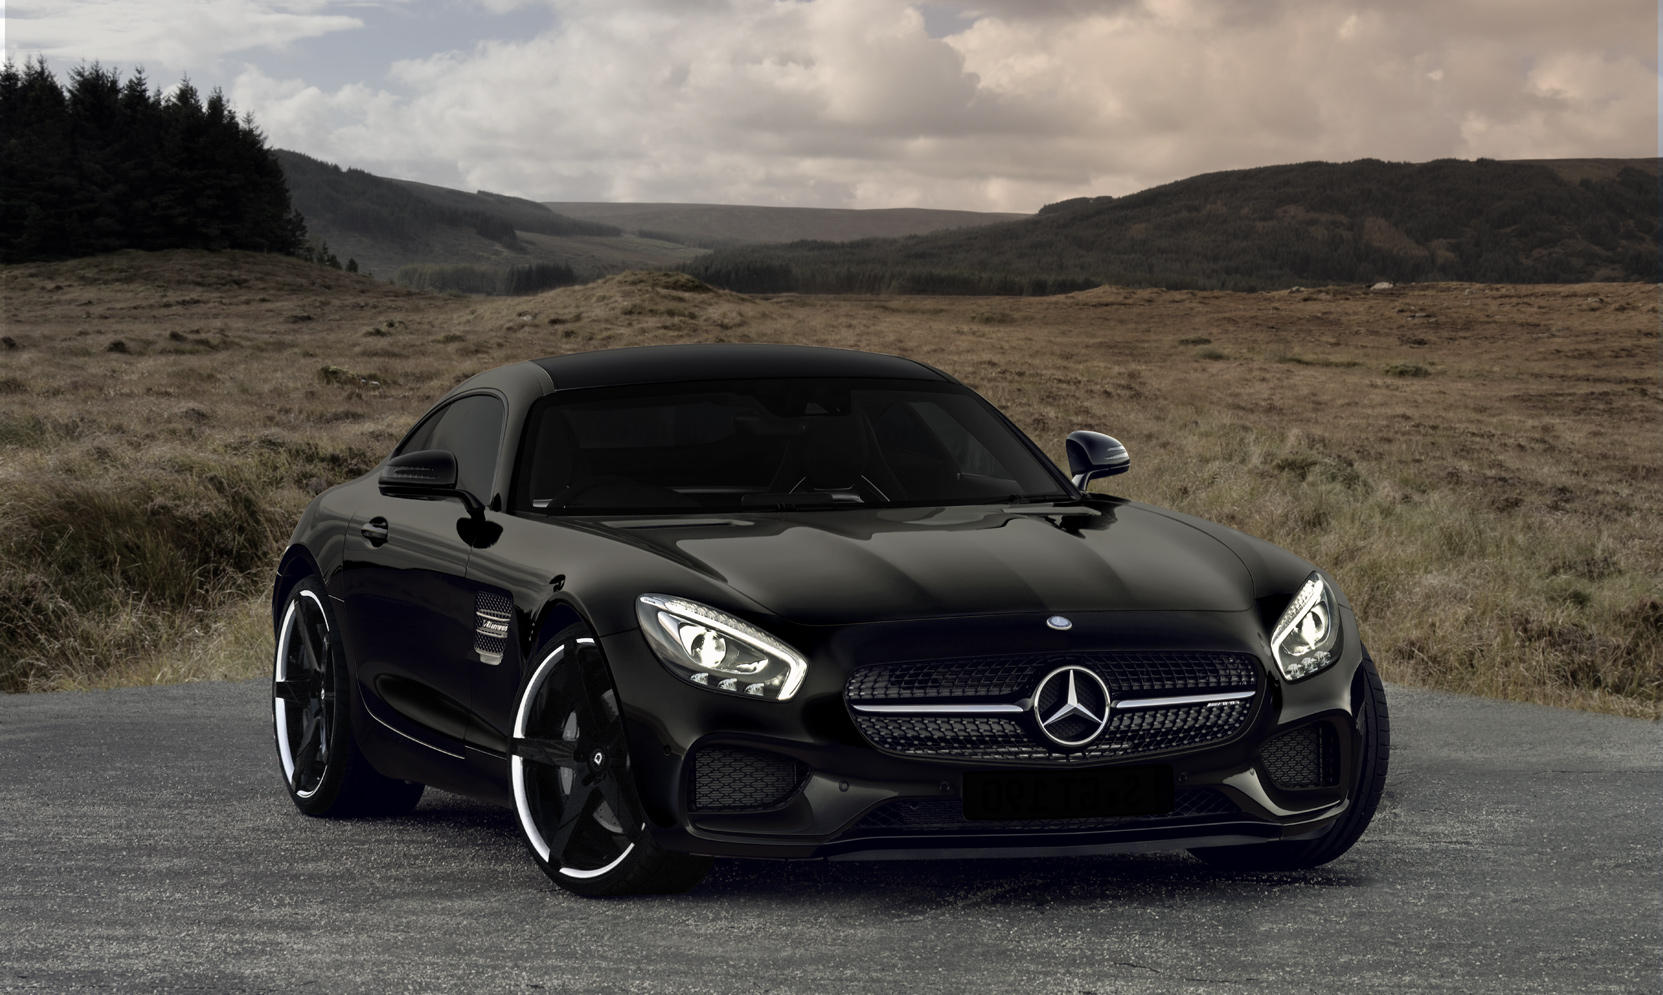 Invictus-Z on the Merecedes-benz GTS.